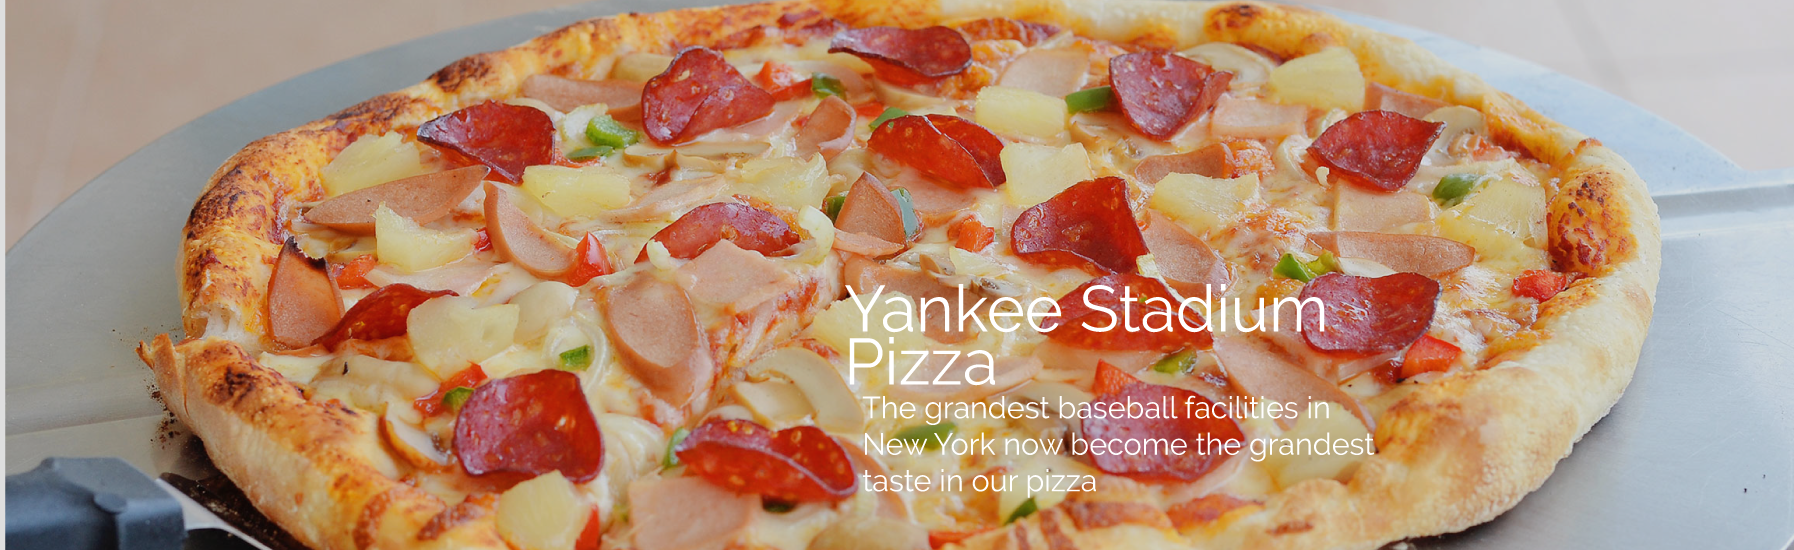 yankee-stadium-pizza.png